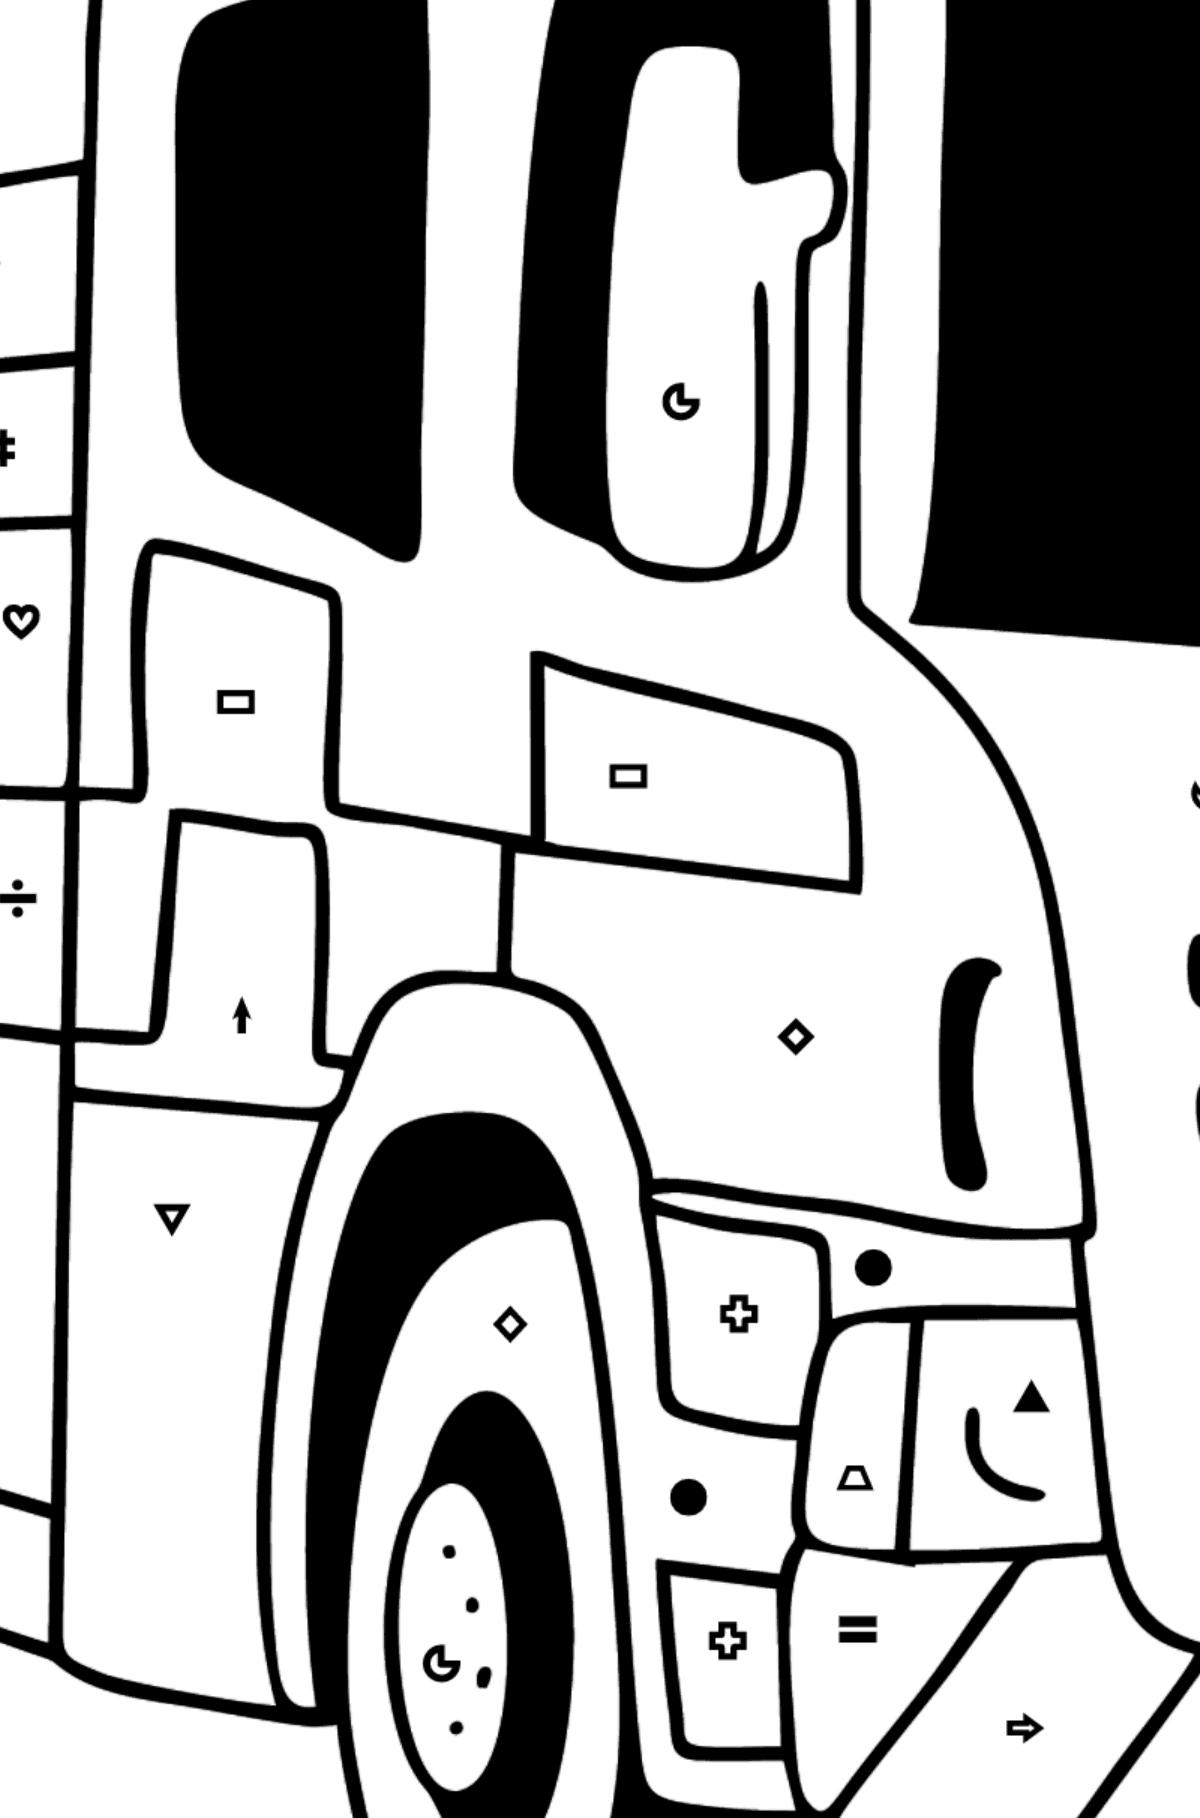 Fire Truck in Great Britain coloring page - Coloring by Symbols and Geometric Shapes for Kids